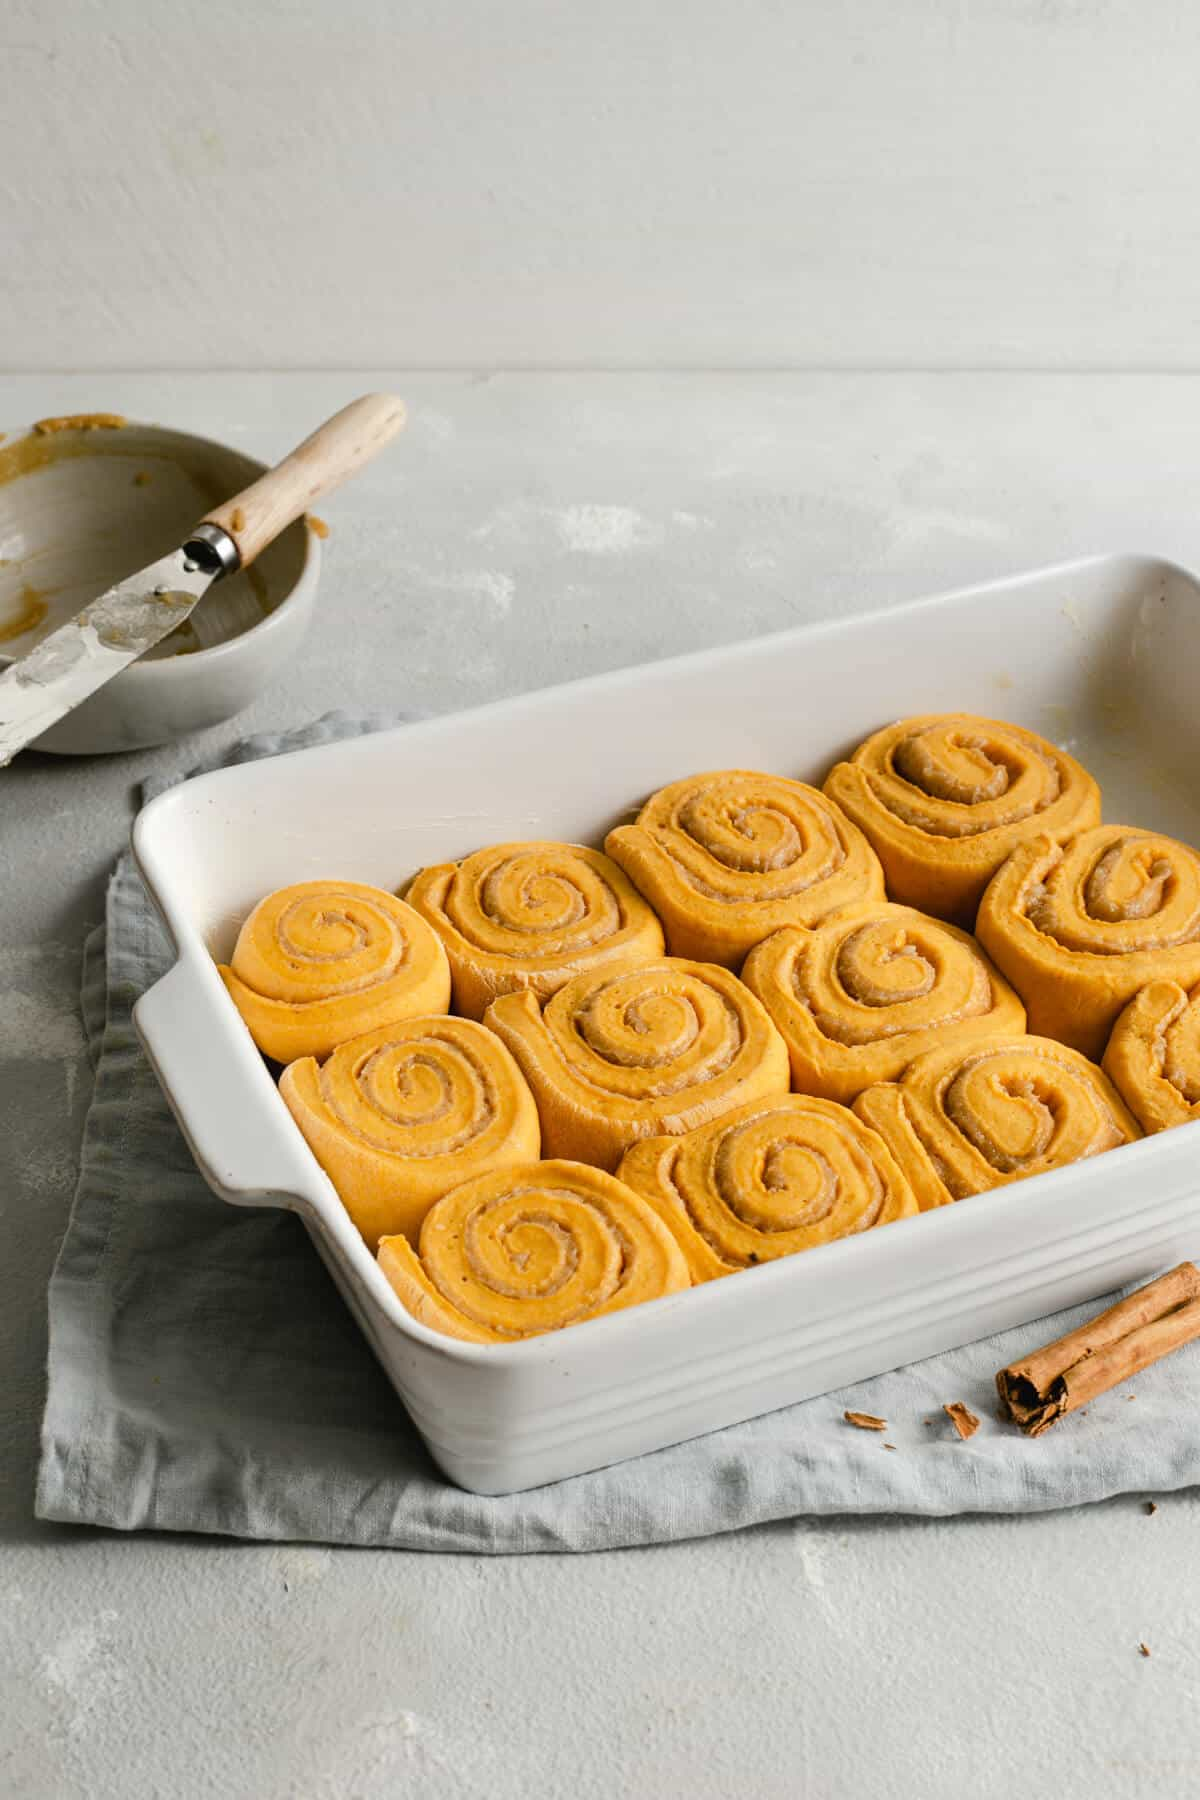 Pumpkin cinnamon rolls in a baking dish